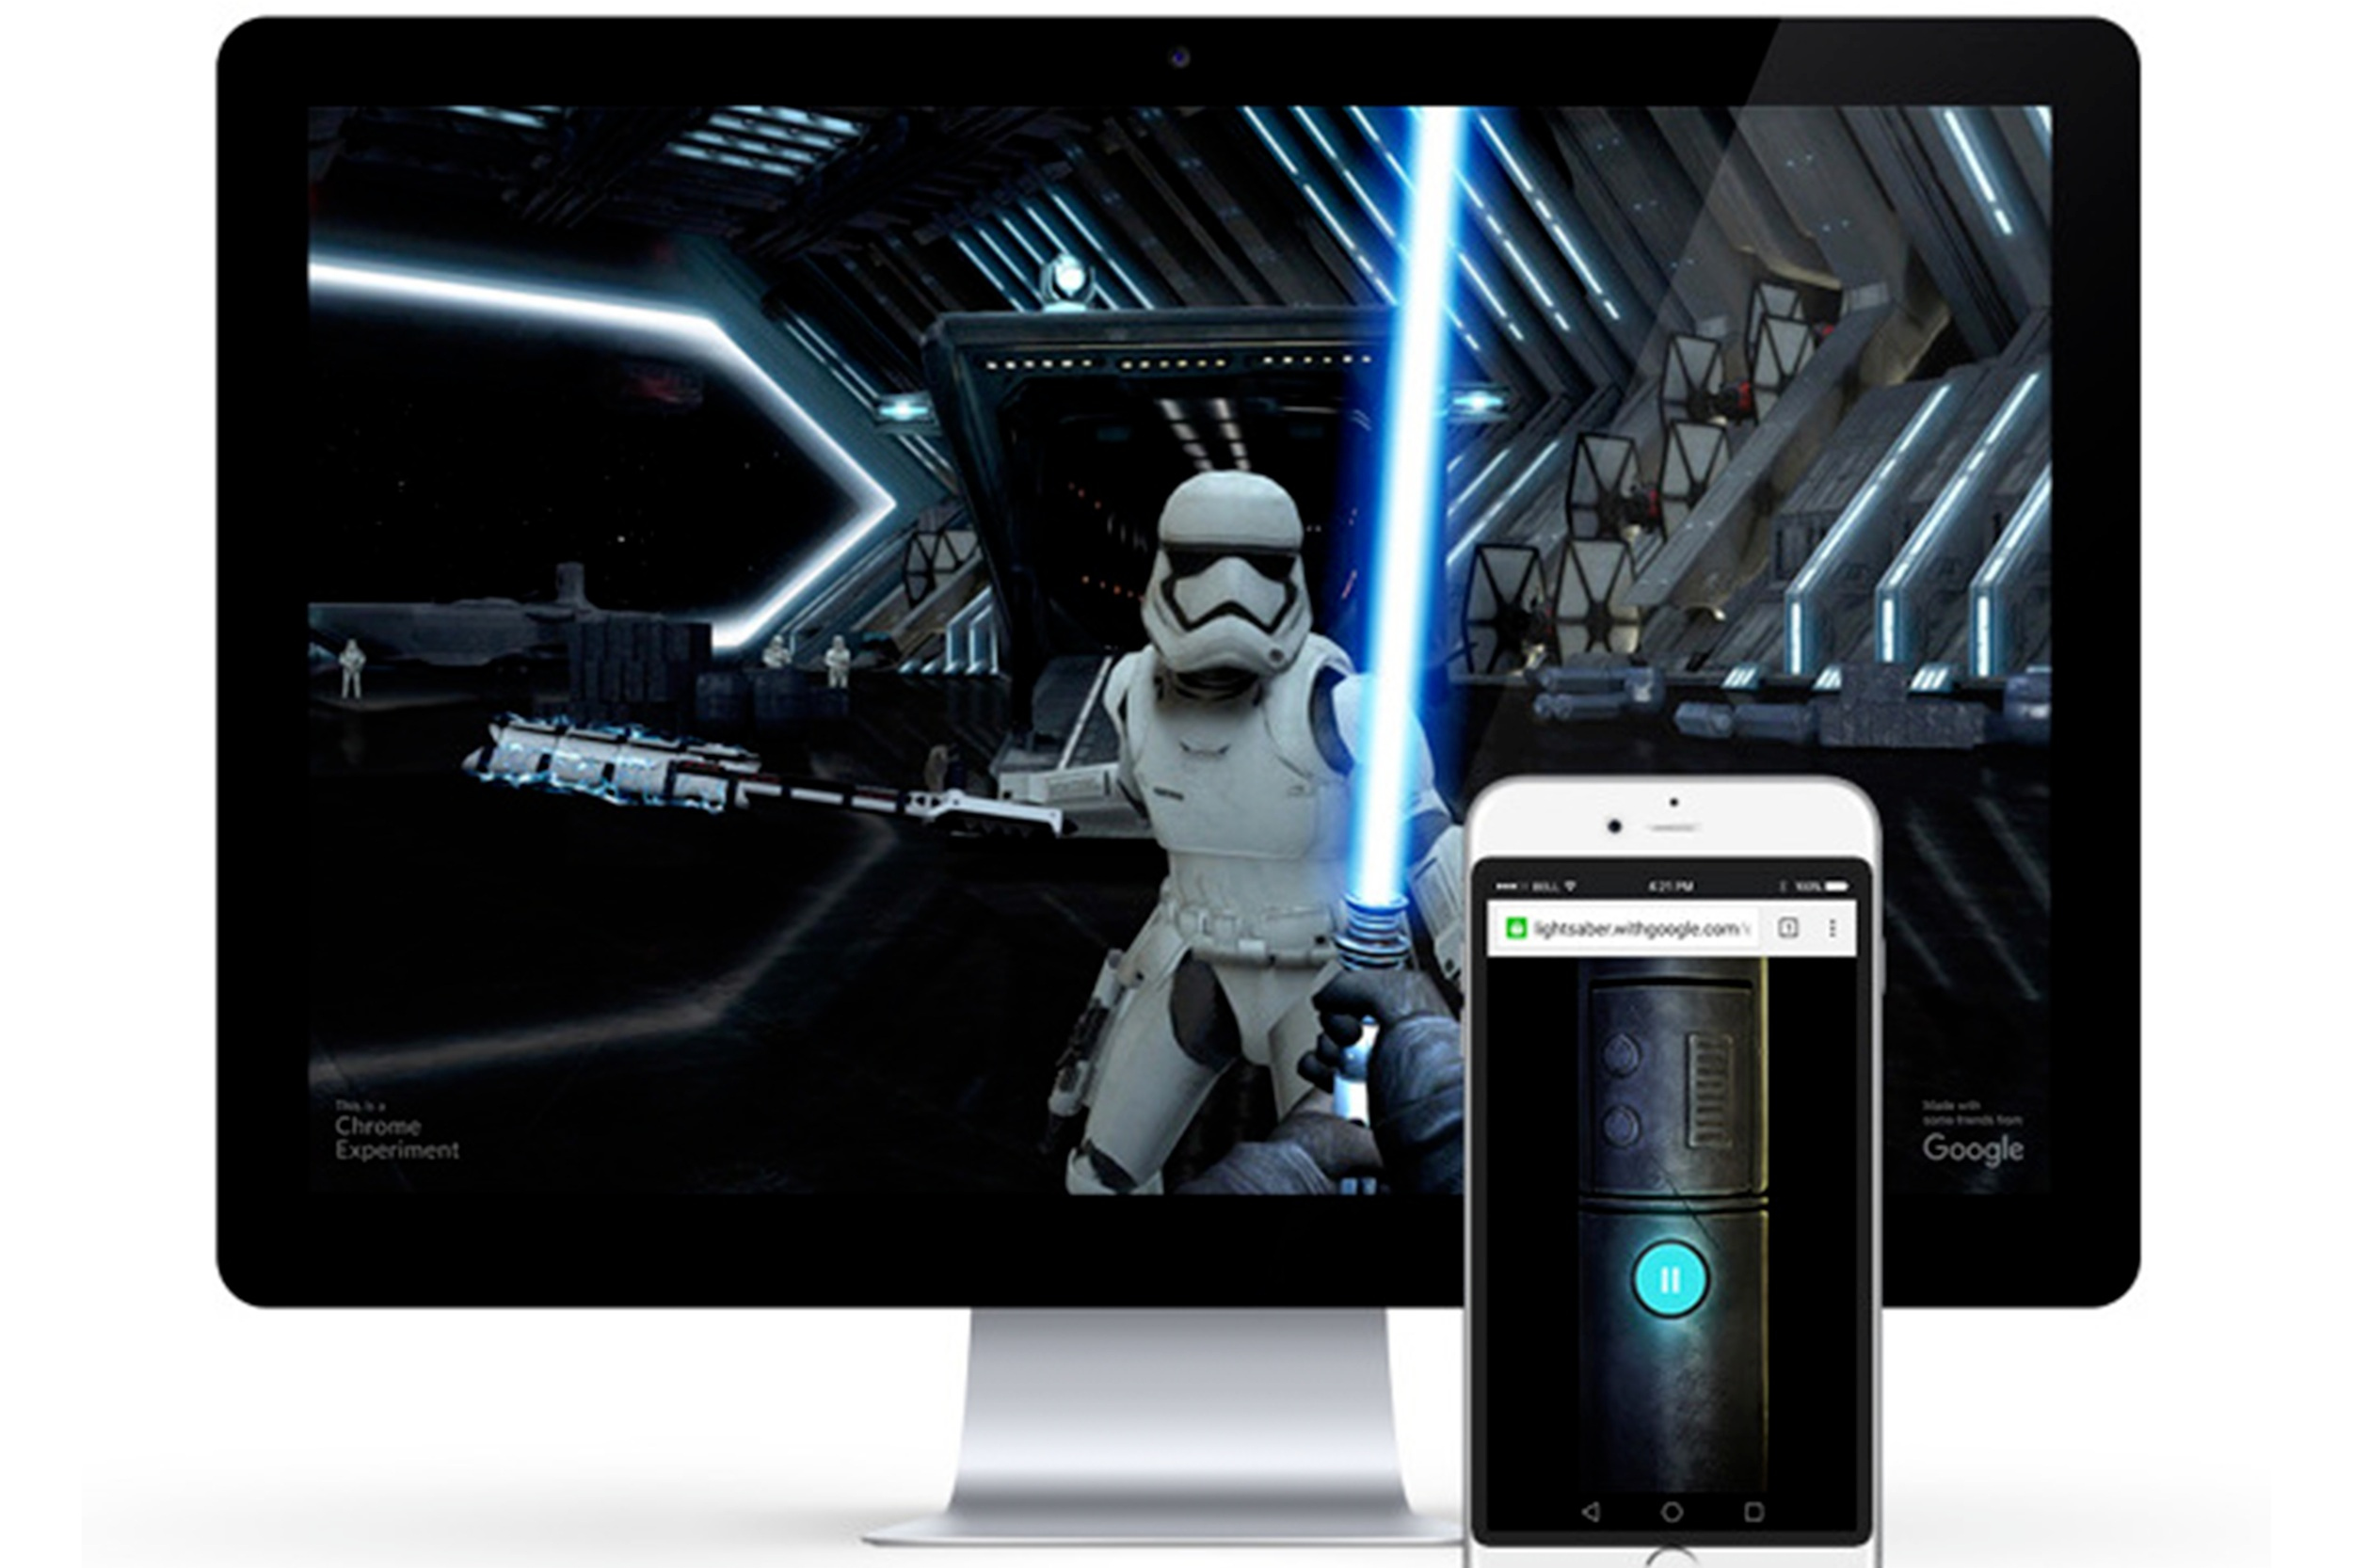 Bringing Star Wars to life through Google platforms & products - GOOGLE x STAR WARS | Mobile App, VR & Communications Design